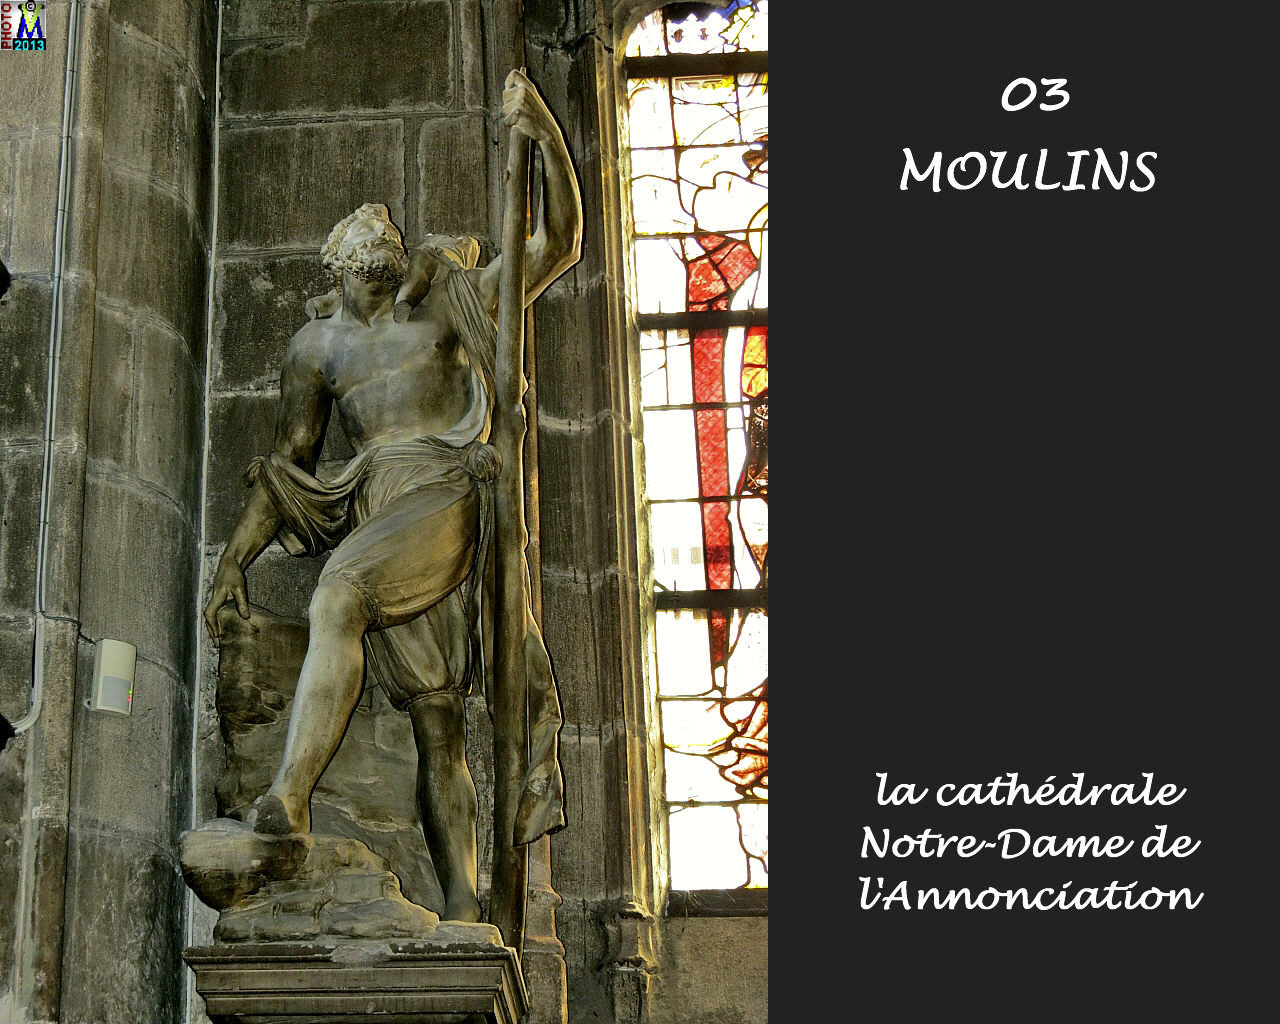 03MOULINS_cathedrale_246.jpg